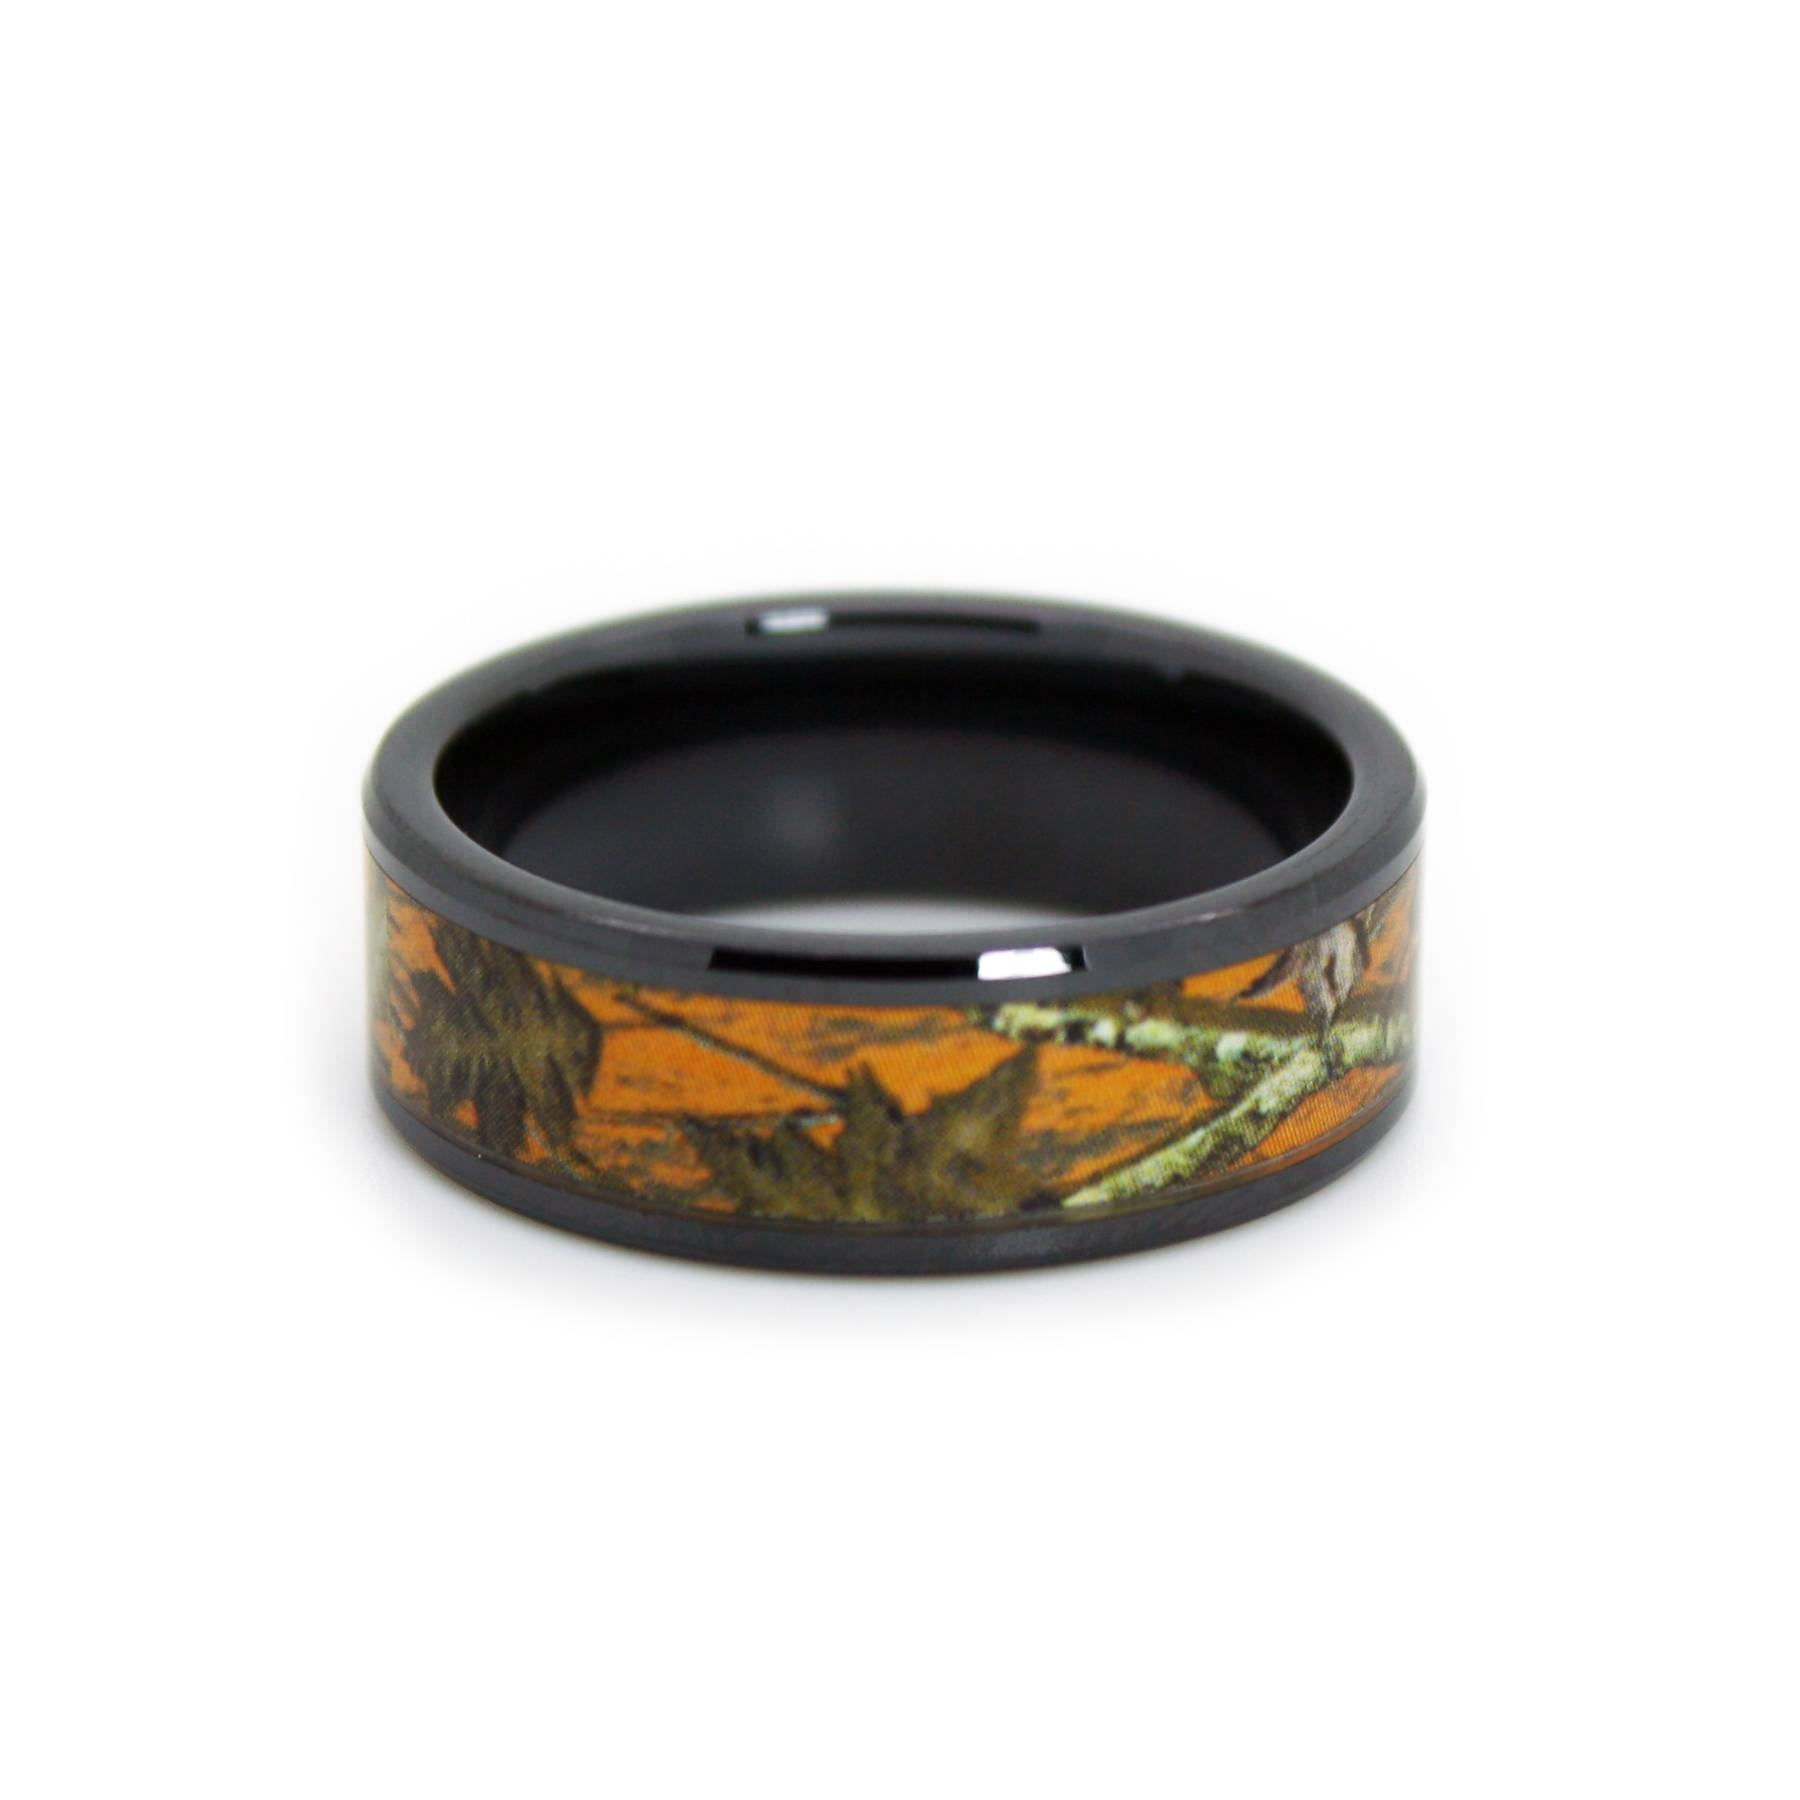 Orange Camo Wedding Rings, Hunting Blaze Orange Camo Band – 1camo Throughout Camouflage Wedding Bands For Him (View 15 of 15)